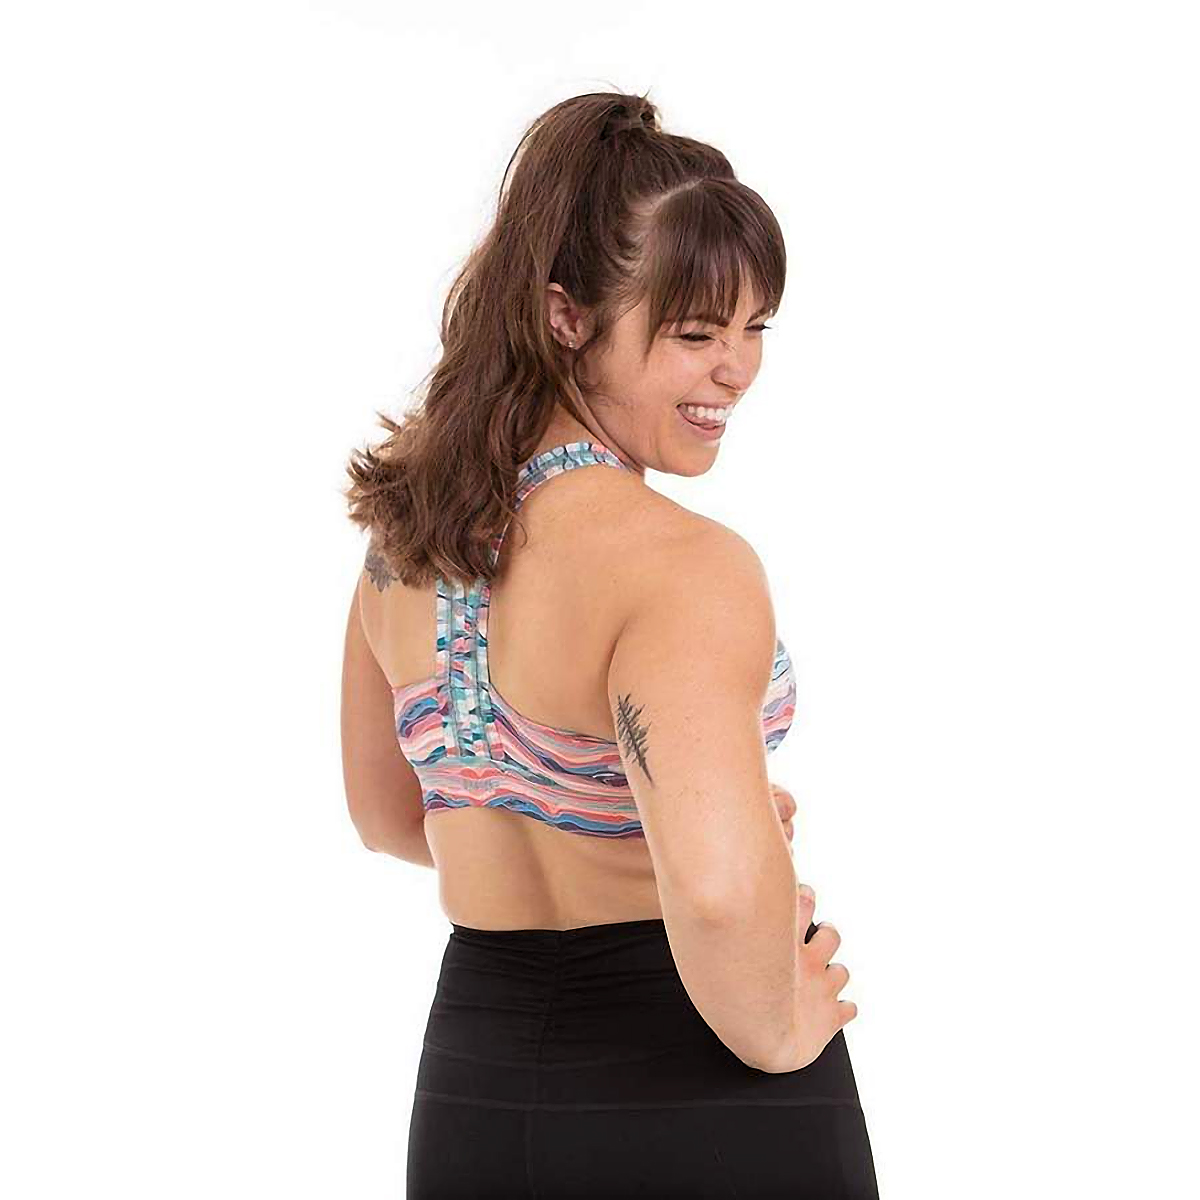 Women's Handful Y-Back Bra - Color: Ripple Effect - Size: S, Ripple Effect, large, image 3